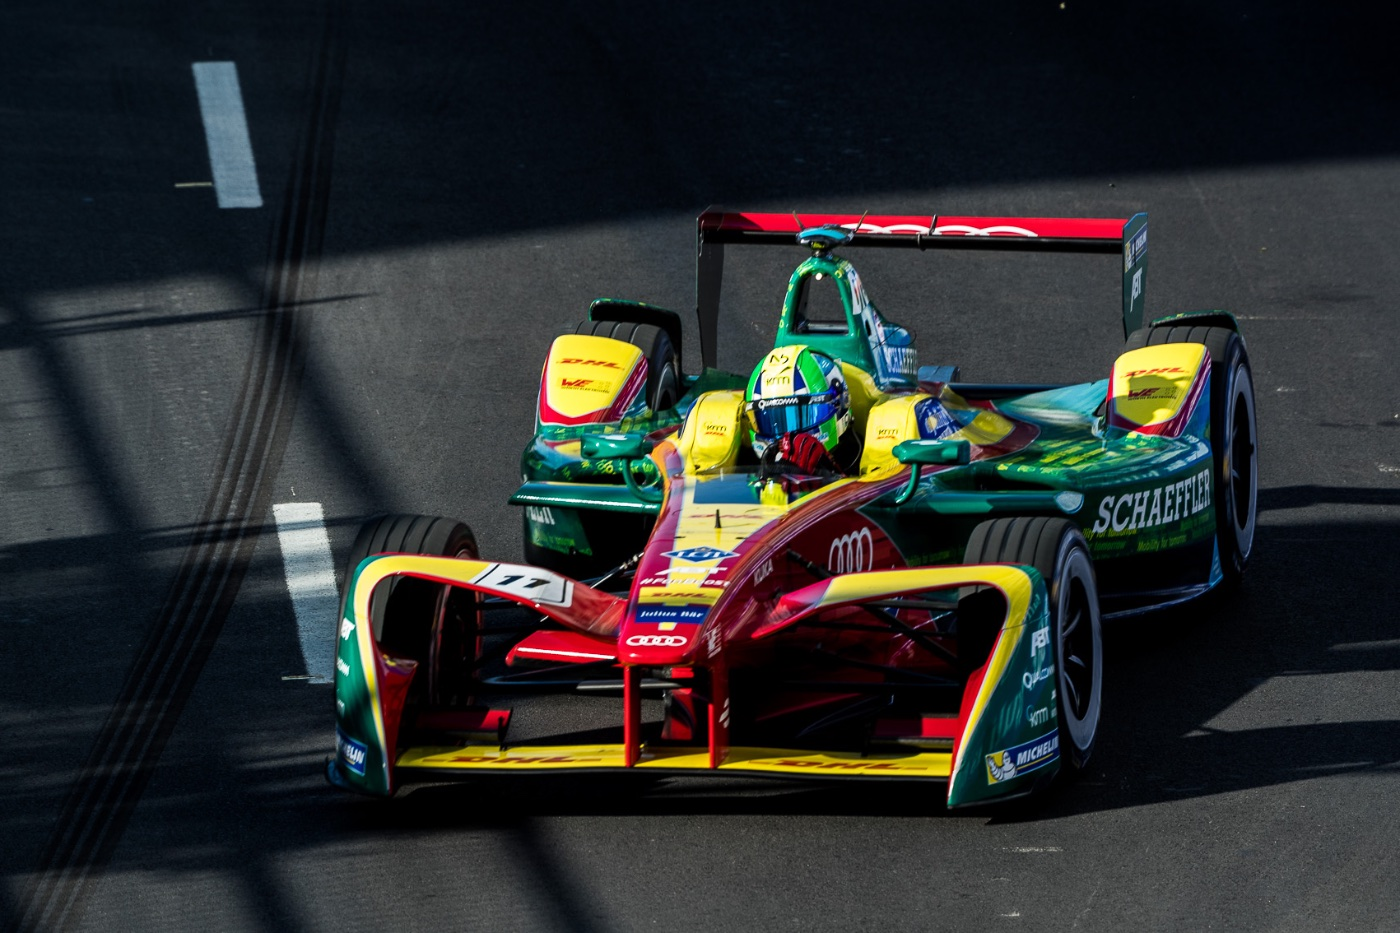 Di Grassi takes pole, cuts Buemi's point lead